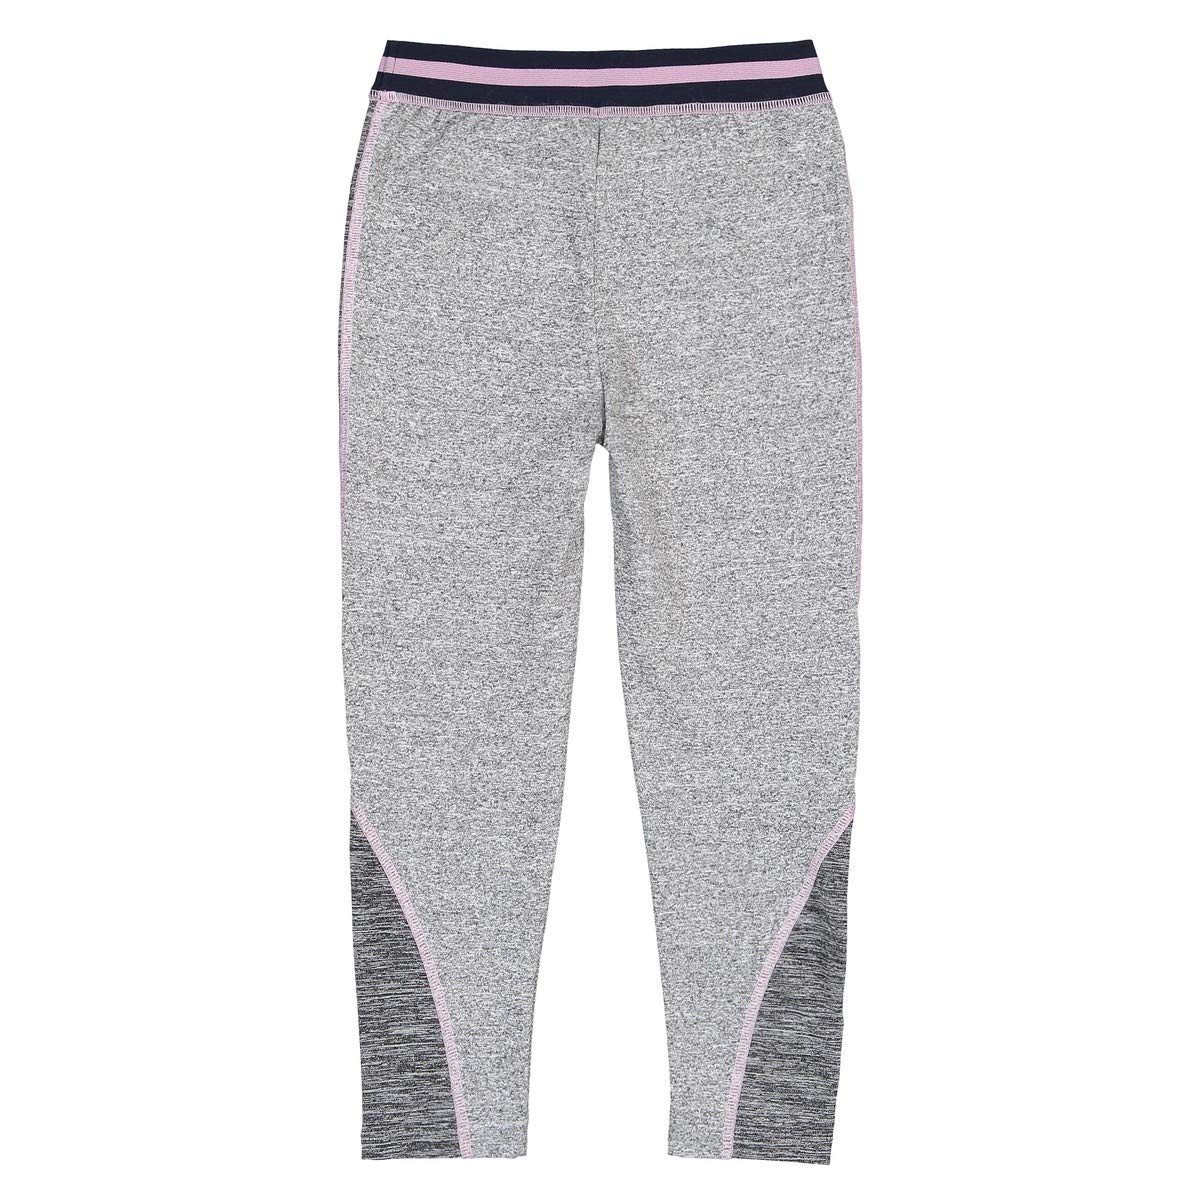 3-12 Years Grey Size 3 Years 37 in. La Redoute Collections Big Girls Technical Sports Leggings